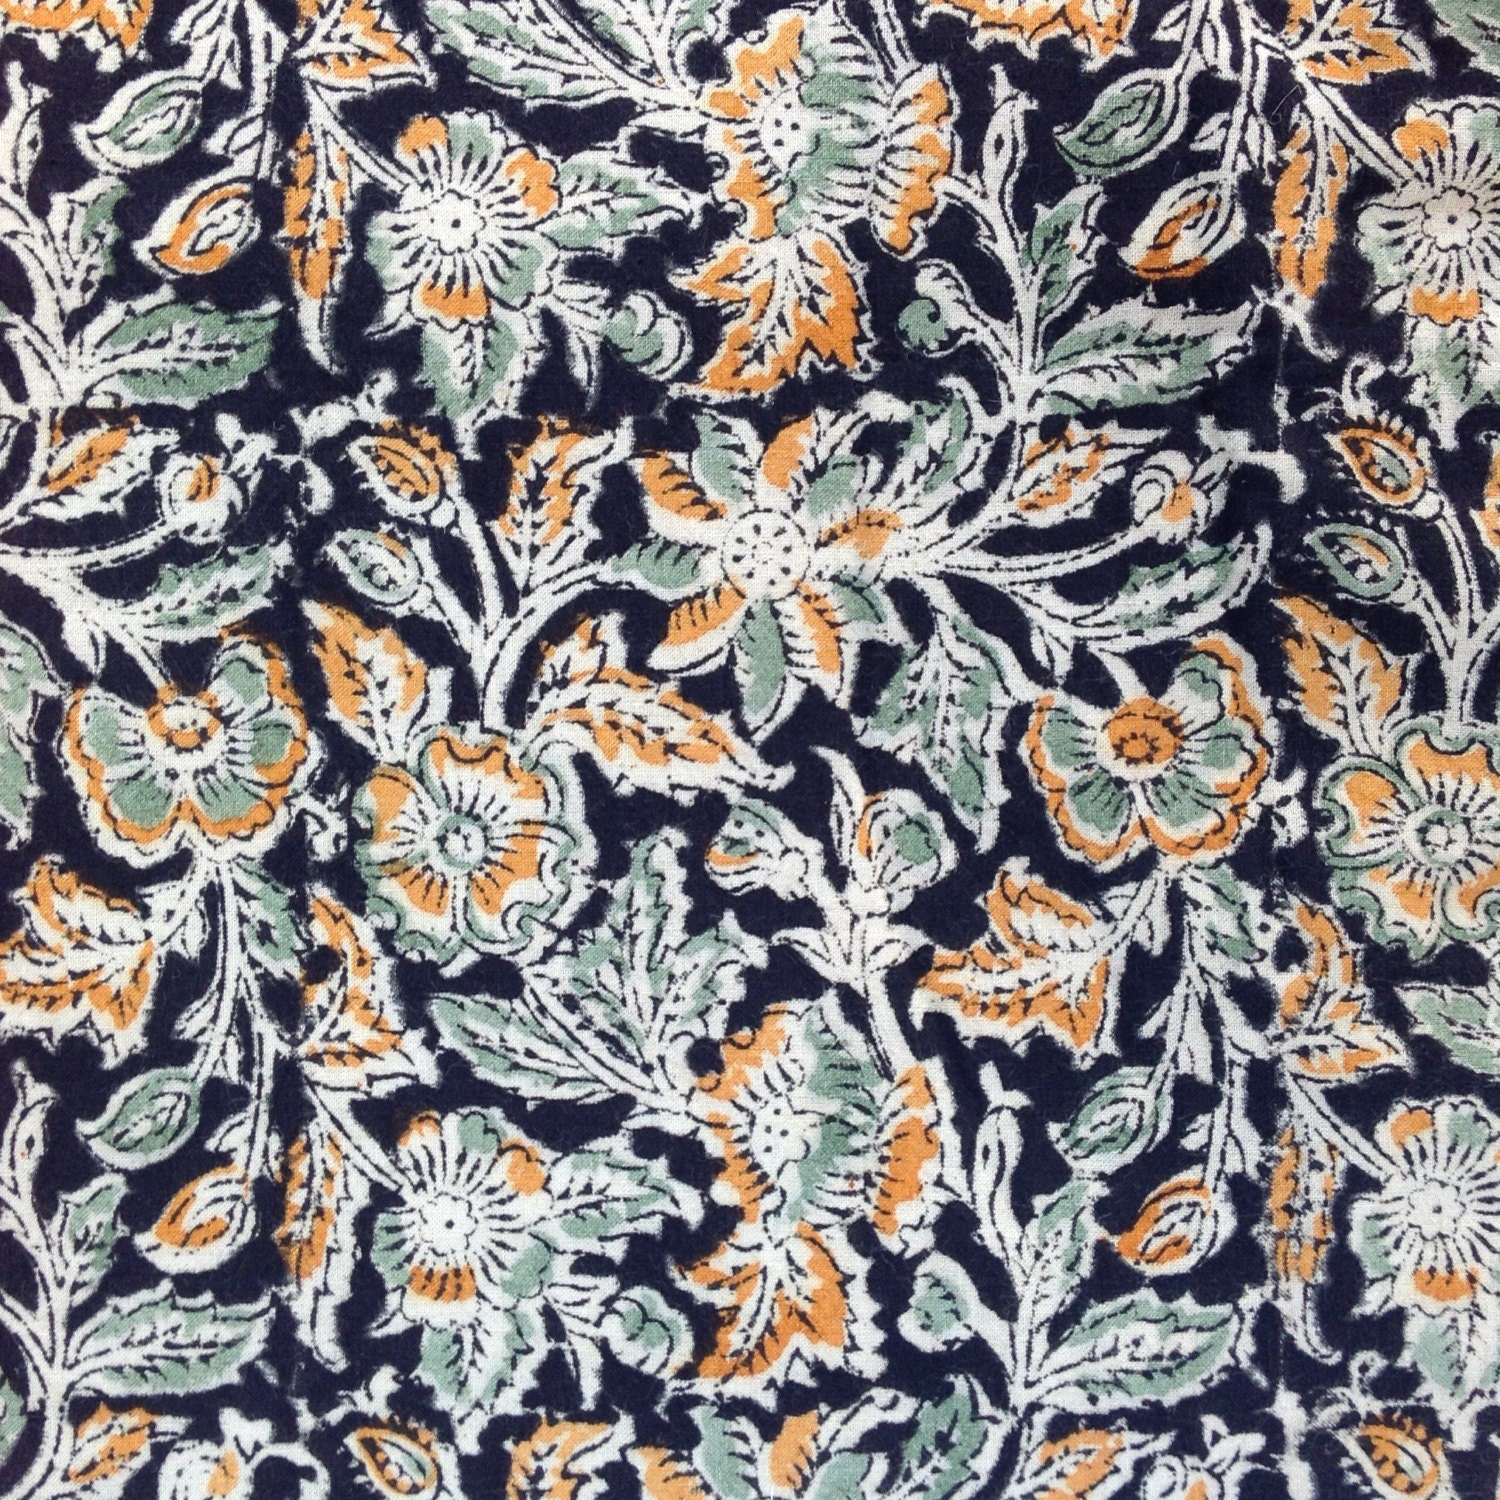 Indian block print kalamkari fabric fabric from india for Fabric printing